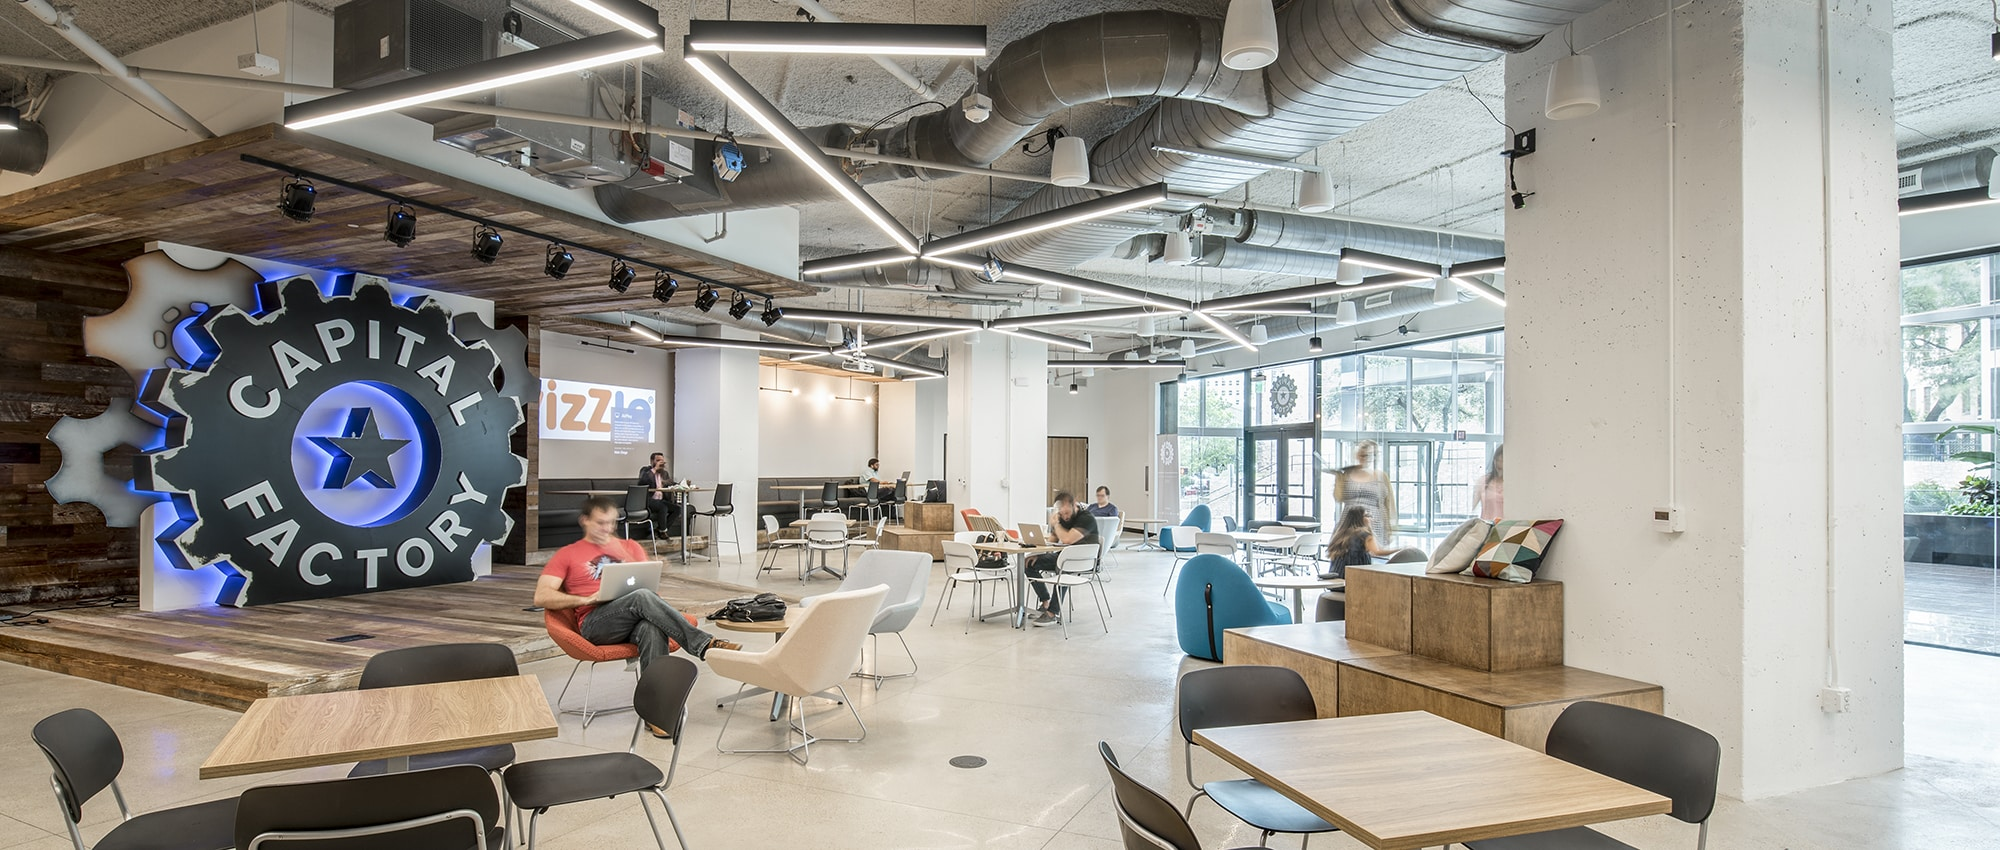 Coworking Space in Austin, Texas | Capital Factory